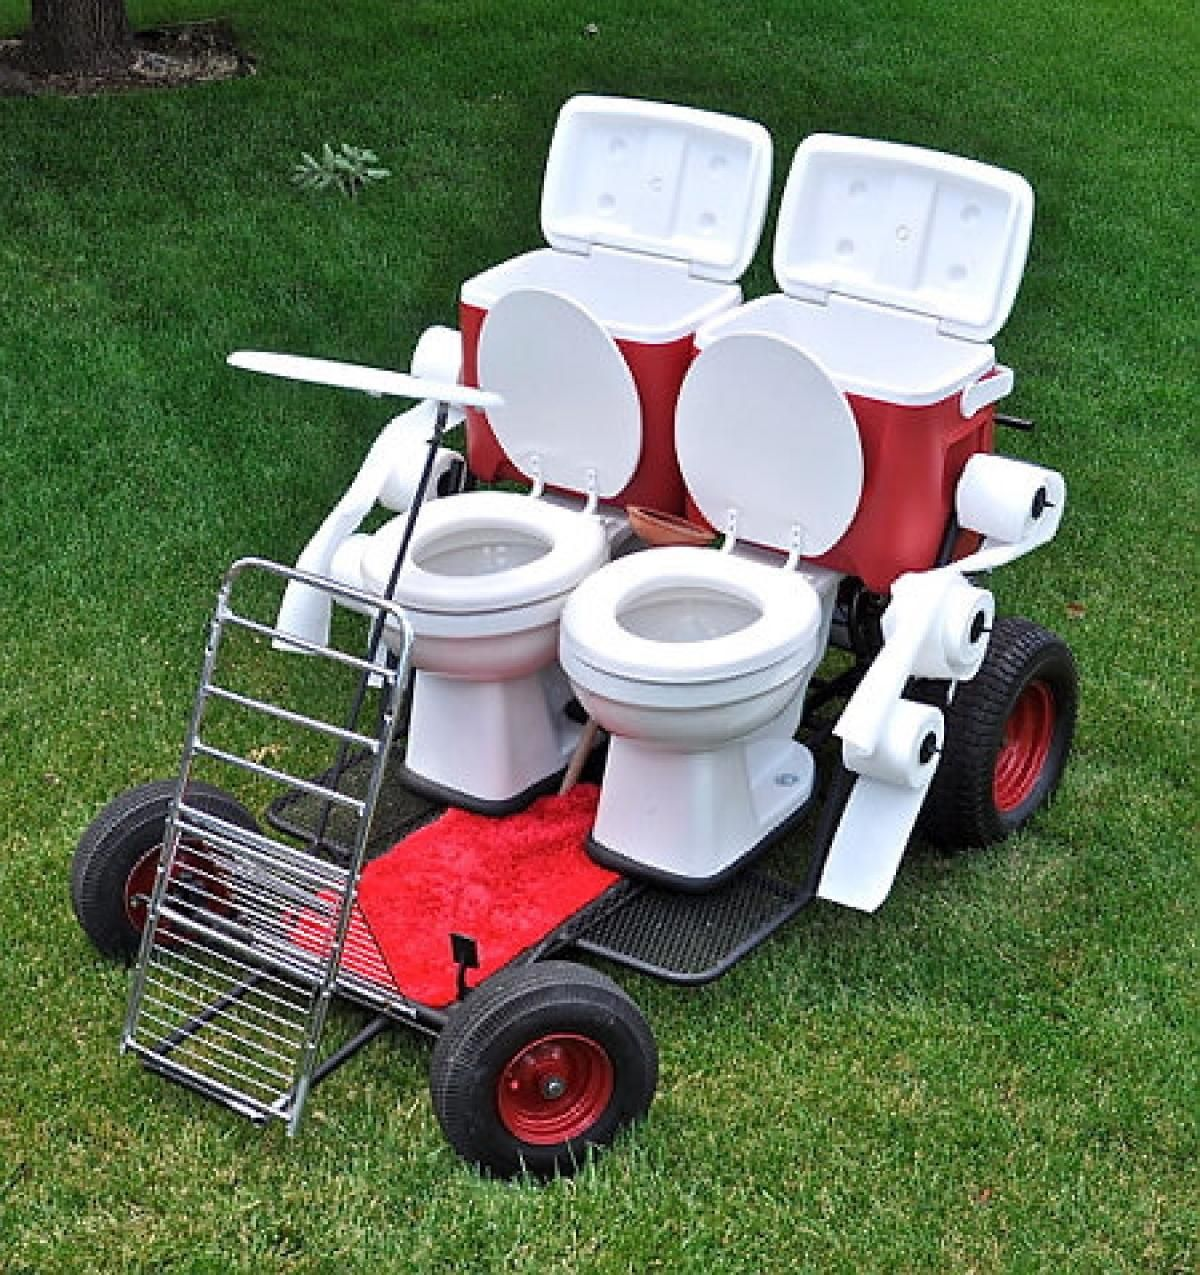 Image result for toilet cars